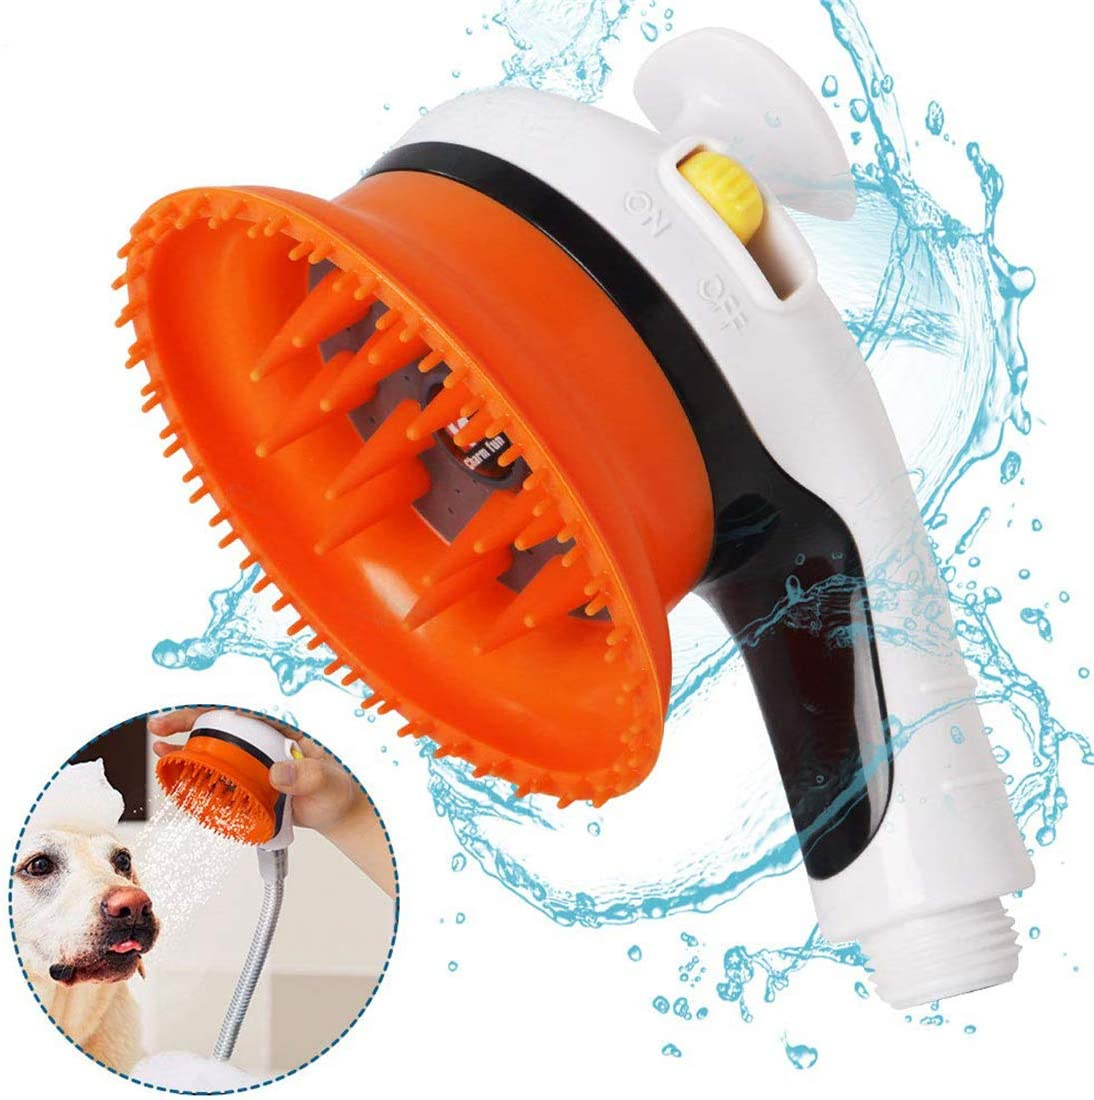 Pink Single QMYS Pet Bathing Tool Universal Dog Cat Shower Sprayer Cleaner Suit Attachment Brush for Hose Bath Massage Scrubber Silicone Cleaning Washer Comb Garden